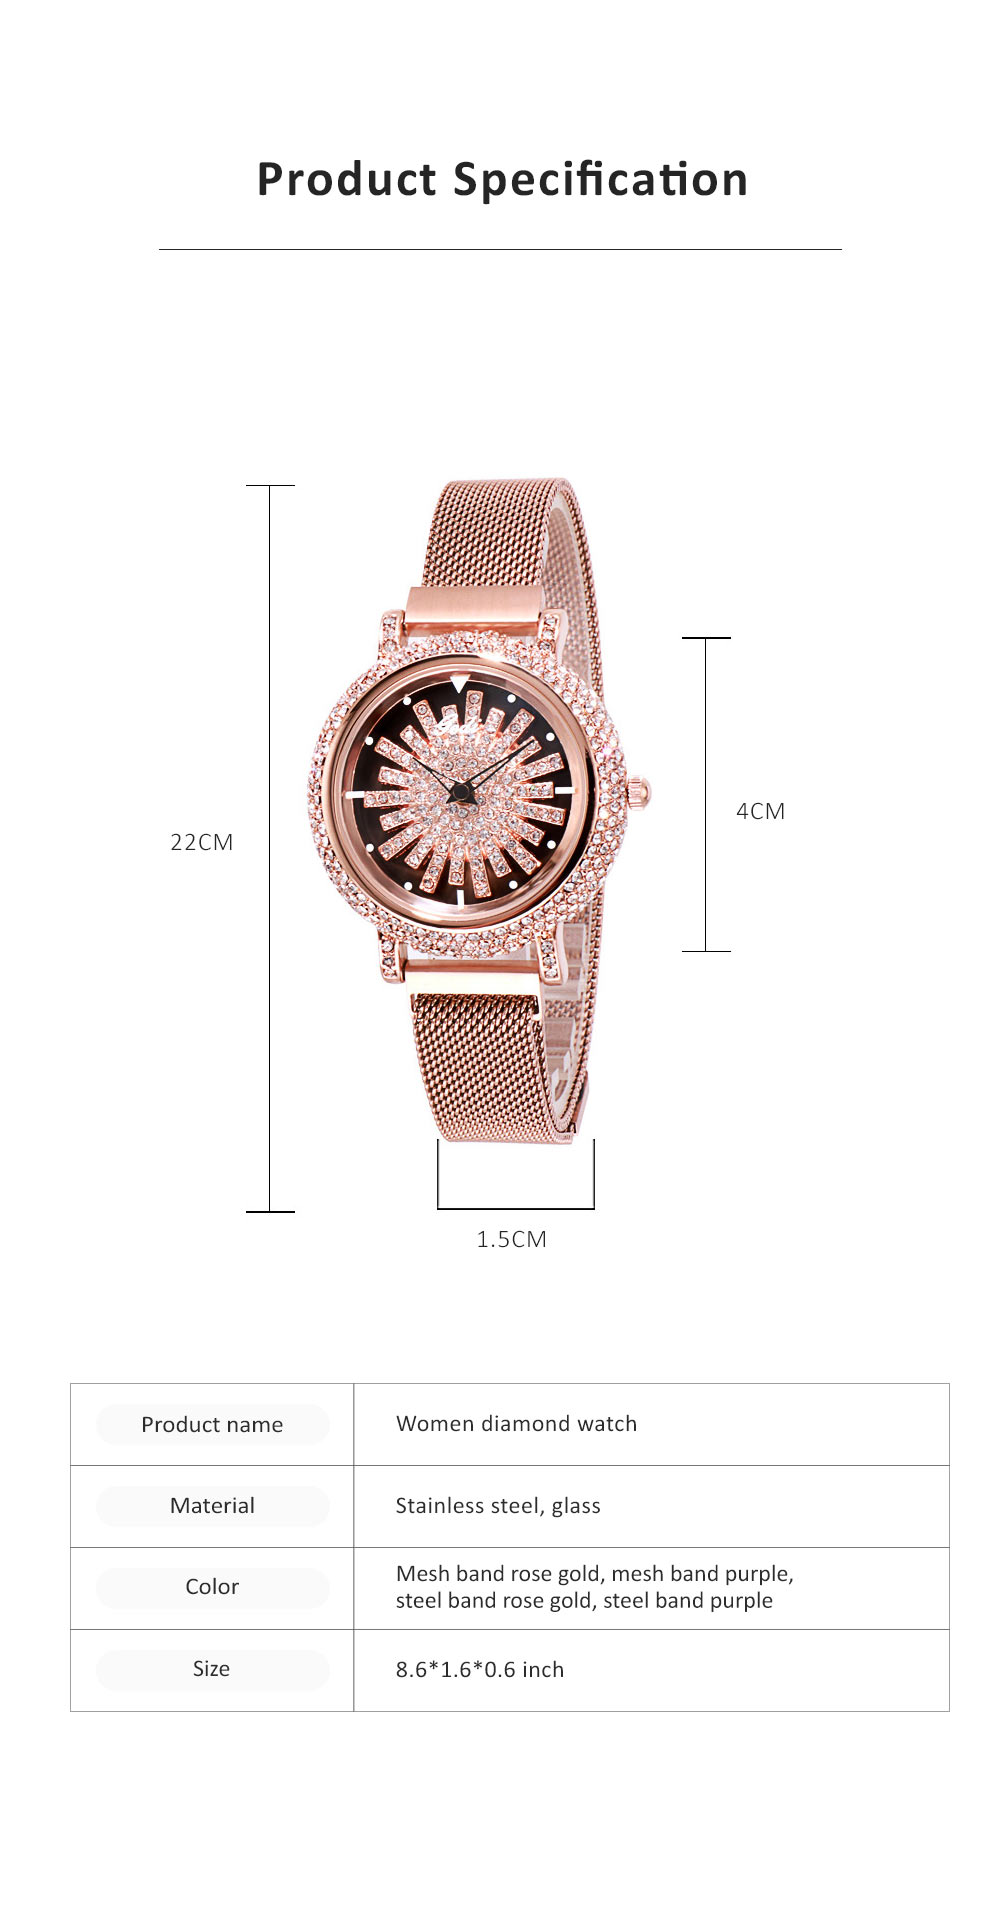 Stylish Quartz Watch with Large Glass Dial Diamond Mounted Watch 360 Degree Rotation Milanese Mesh Strap Wristwatch for Women 6